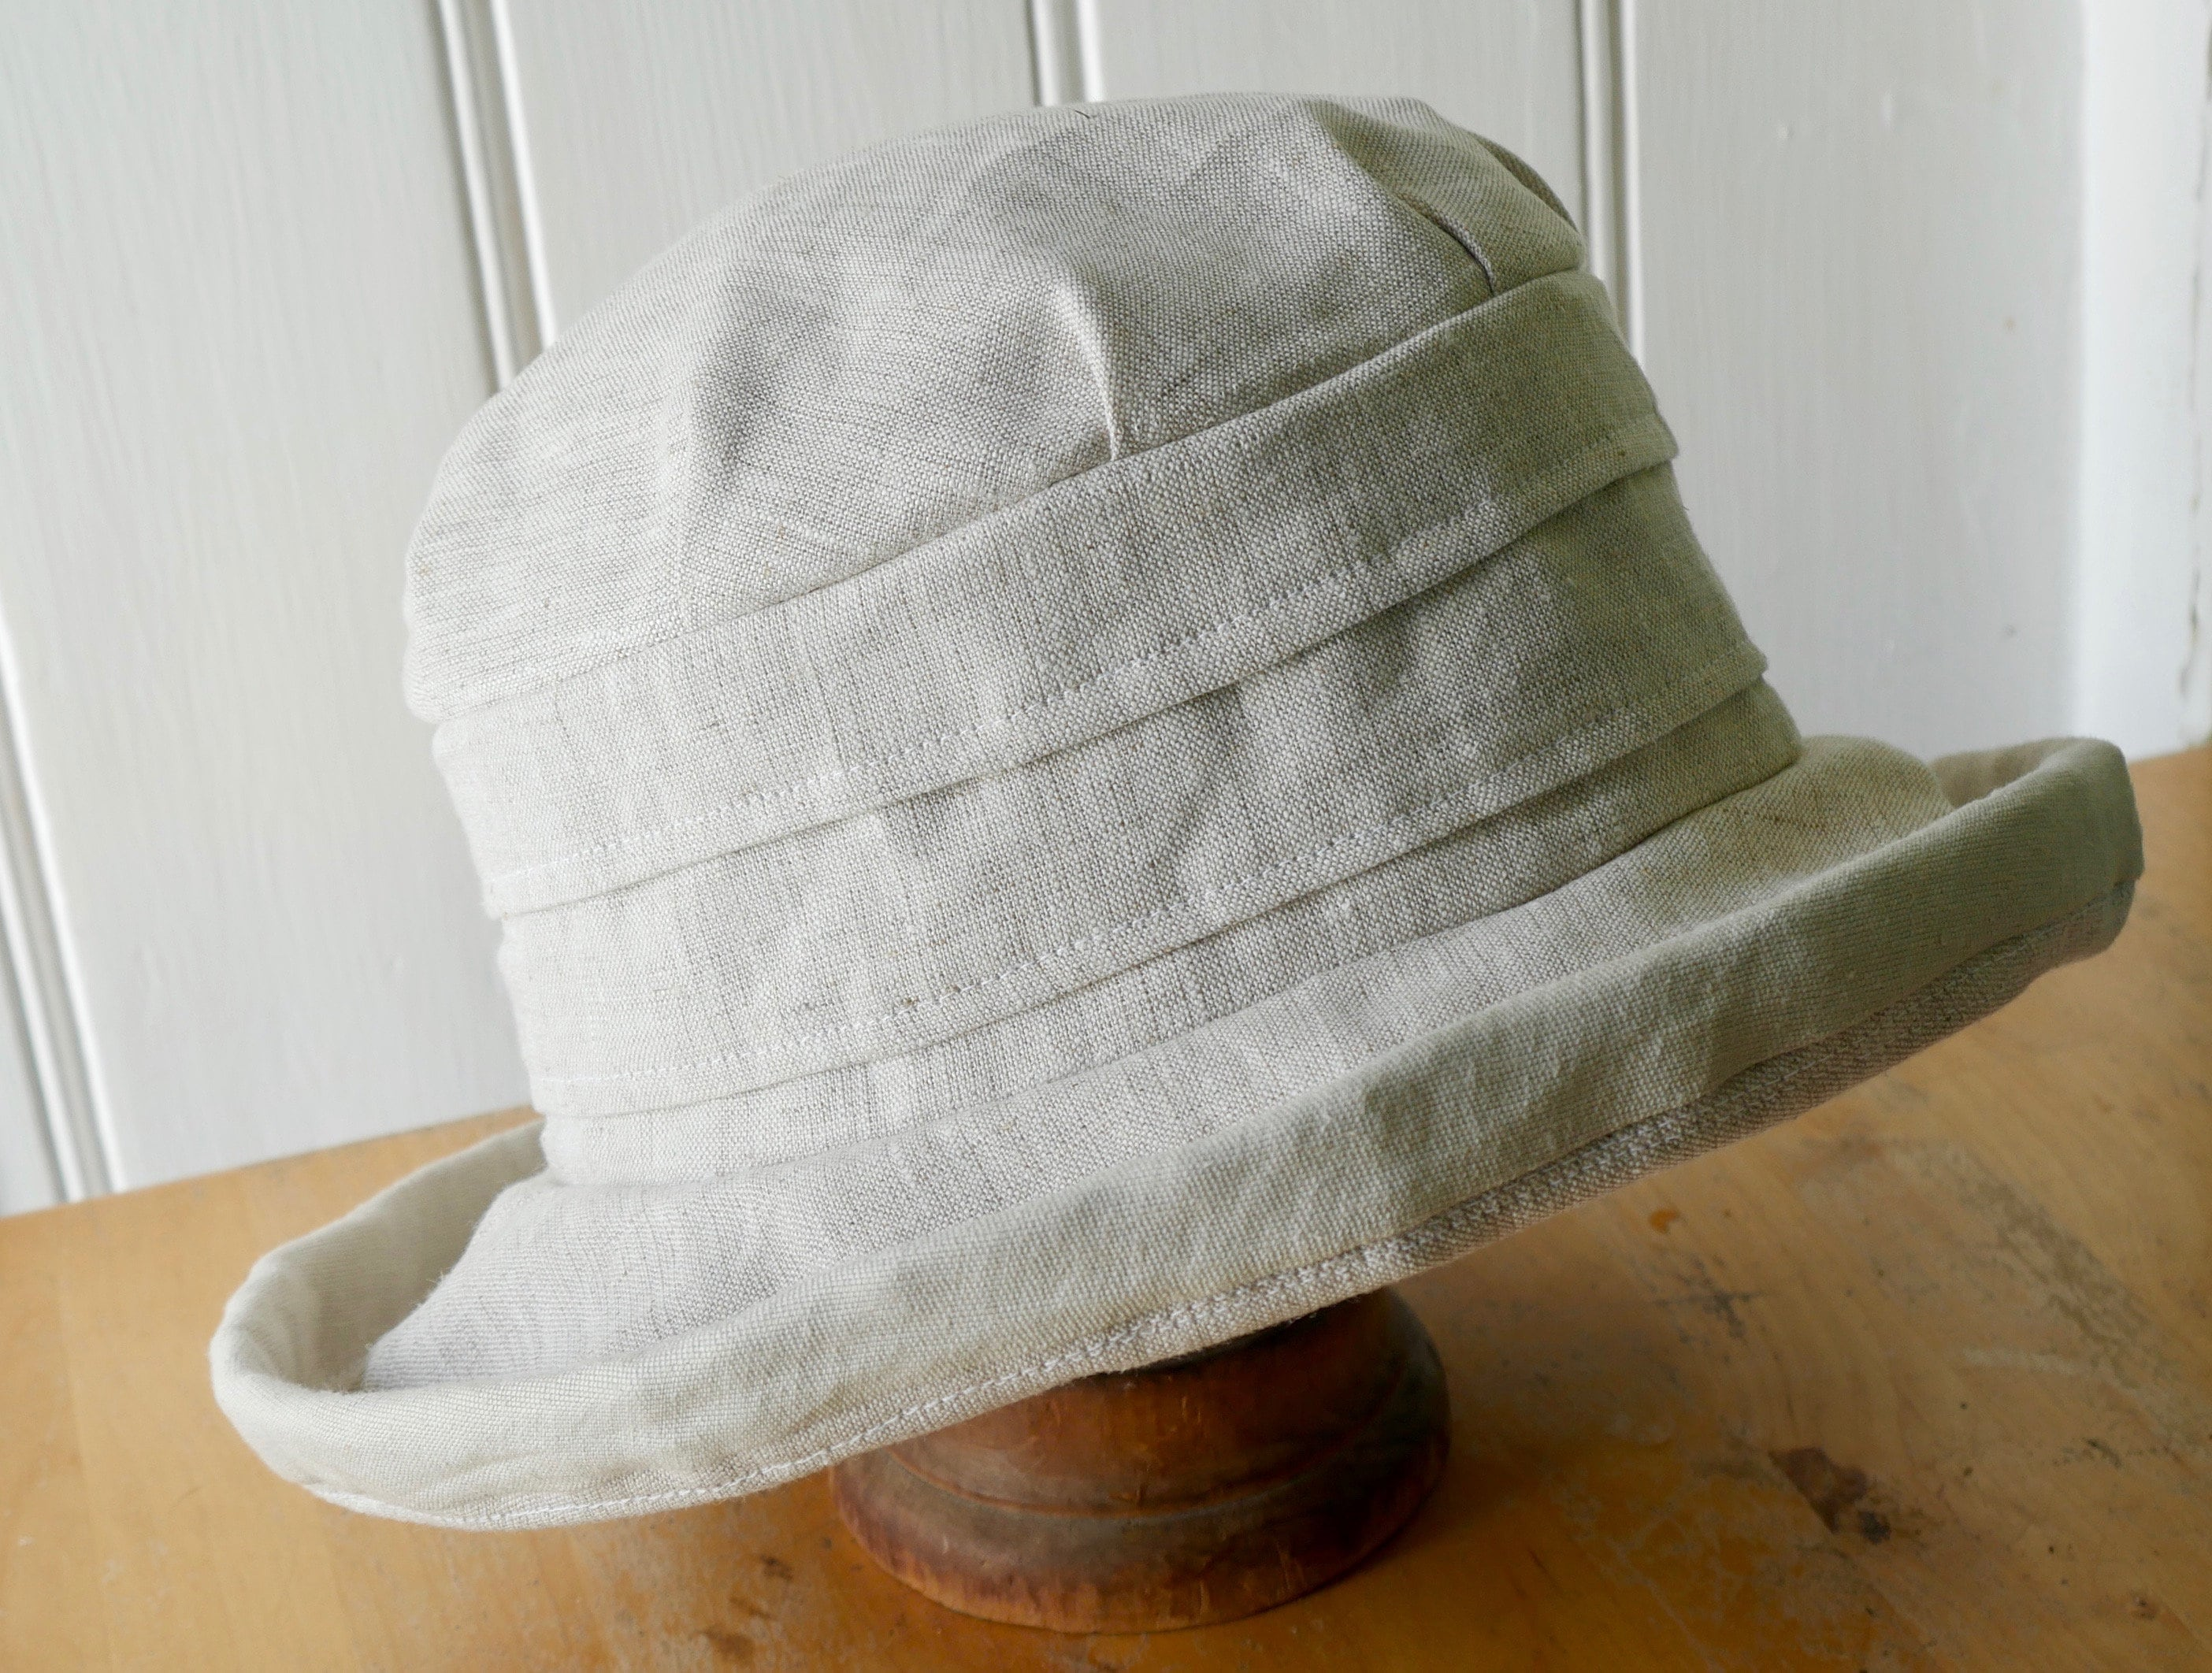 Linen big brimmed hat linen sun hat summer hat vacation  d1d7c3ba813